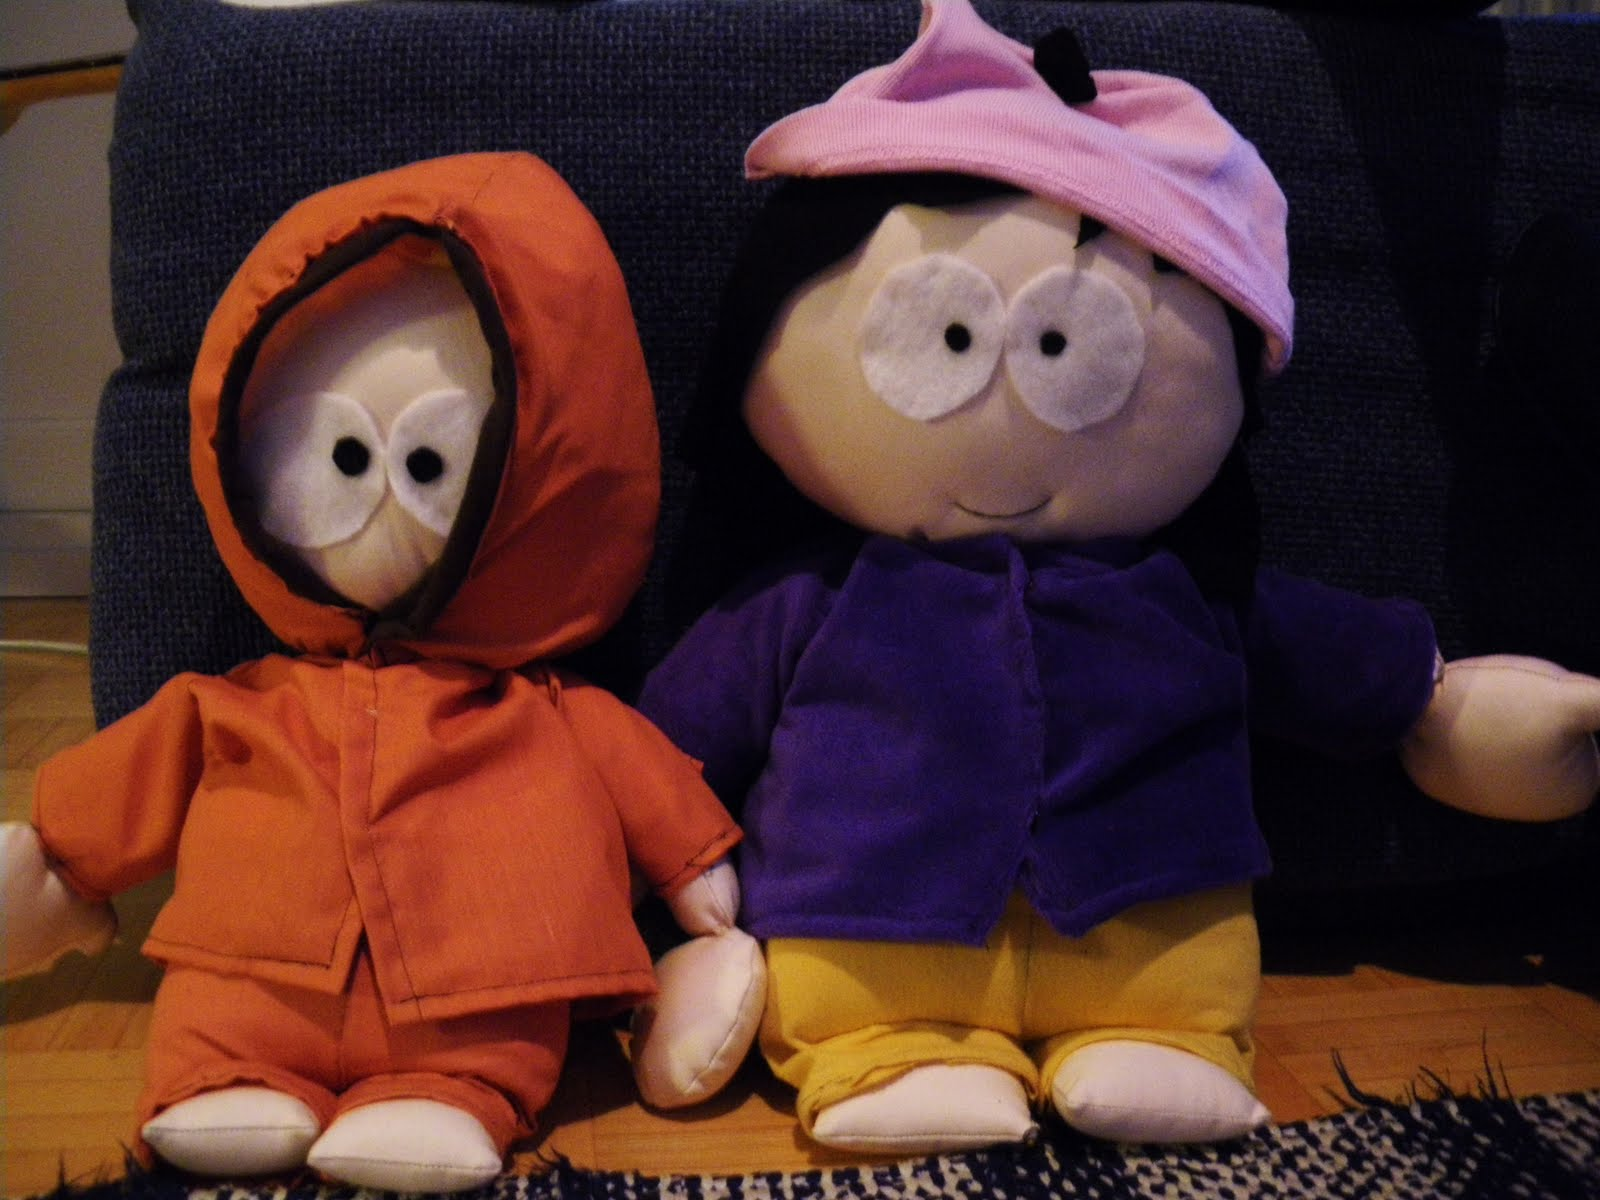 Kenny and wendy